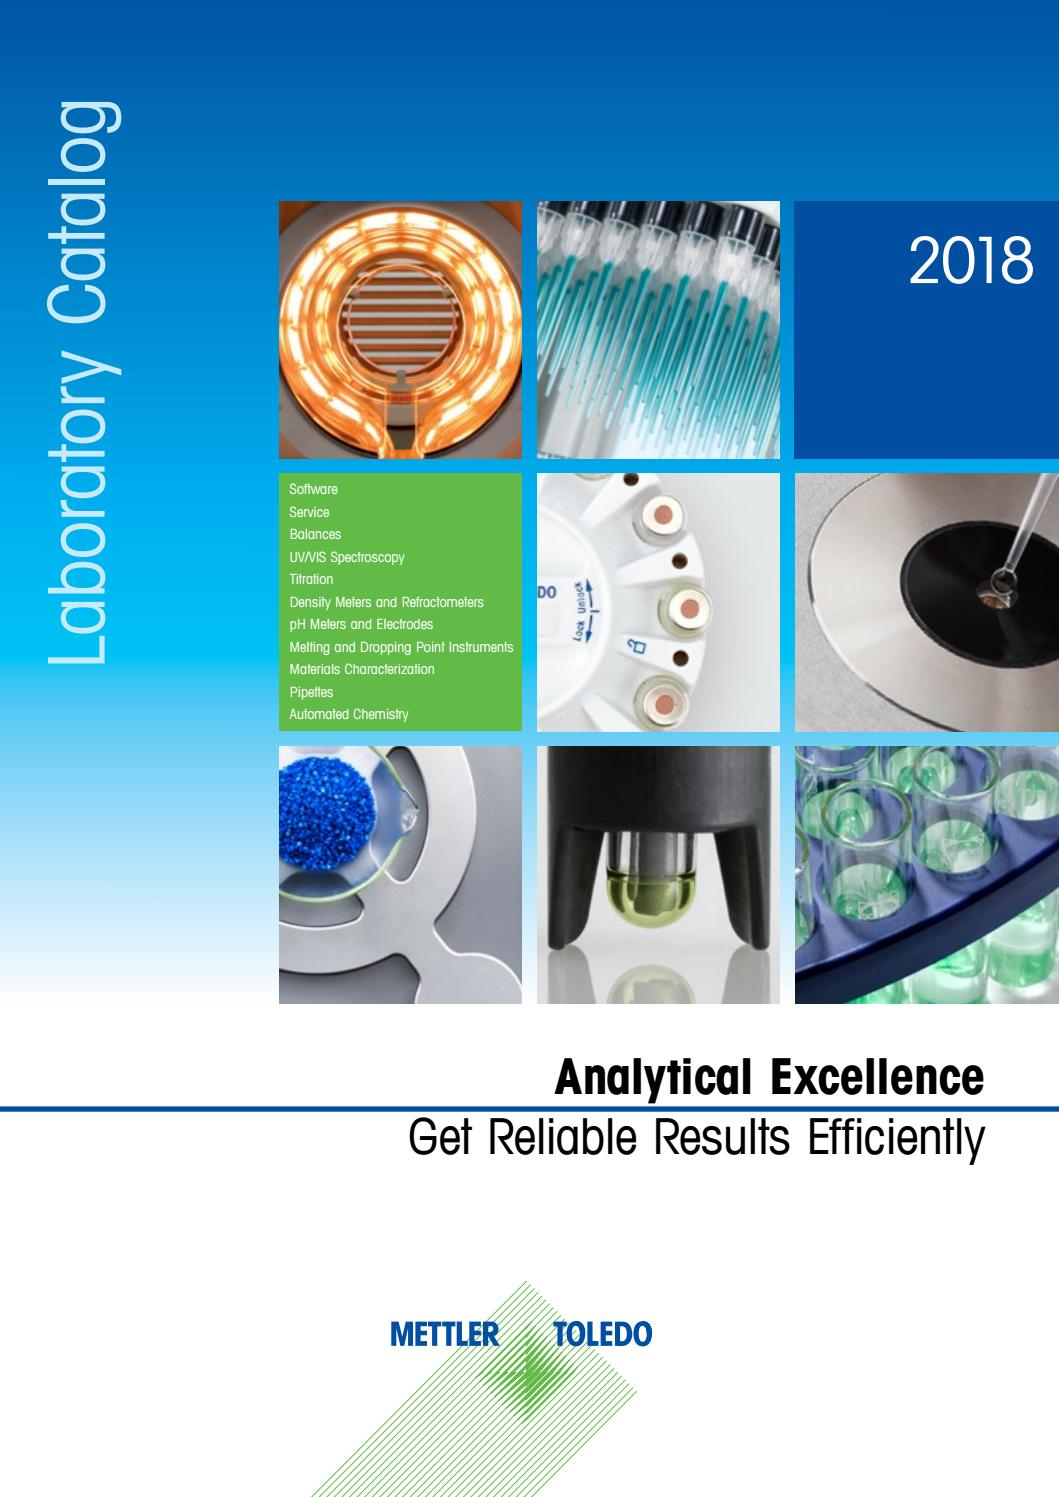 2018 Mettler Toledo Laboratory Products Catalog By Bill Packman Issuu Wiring Diagram